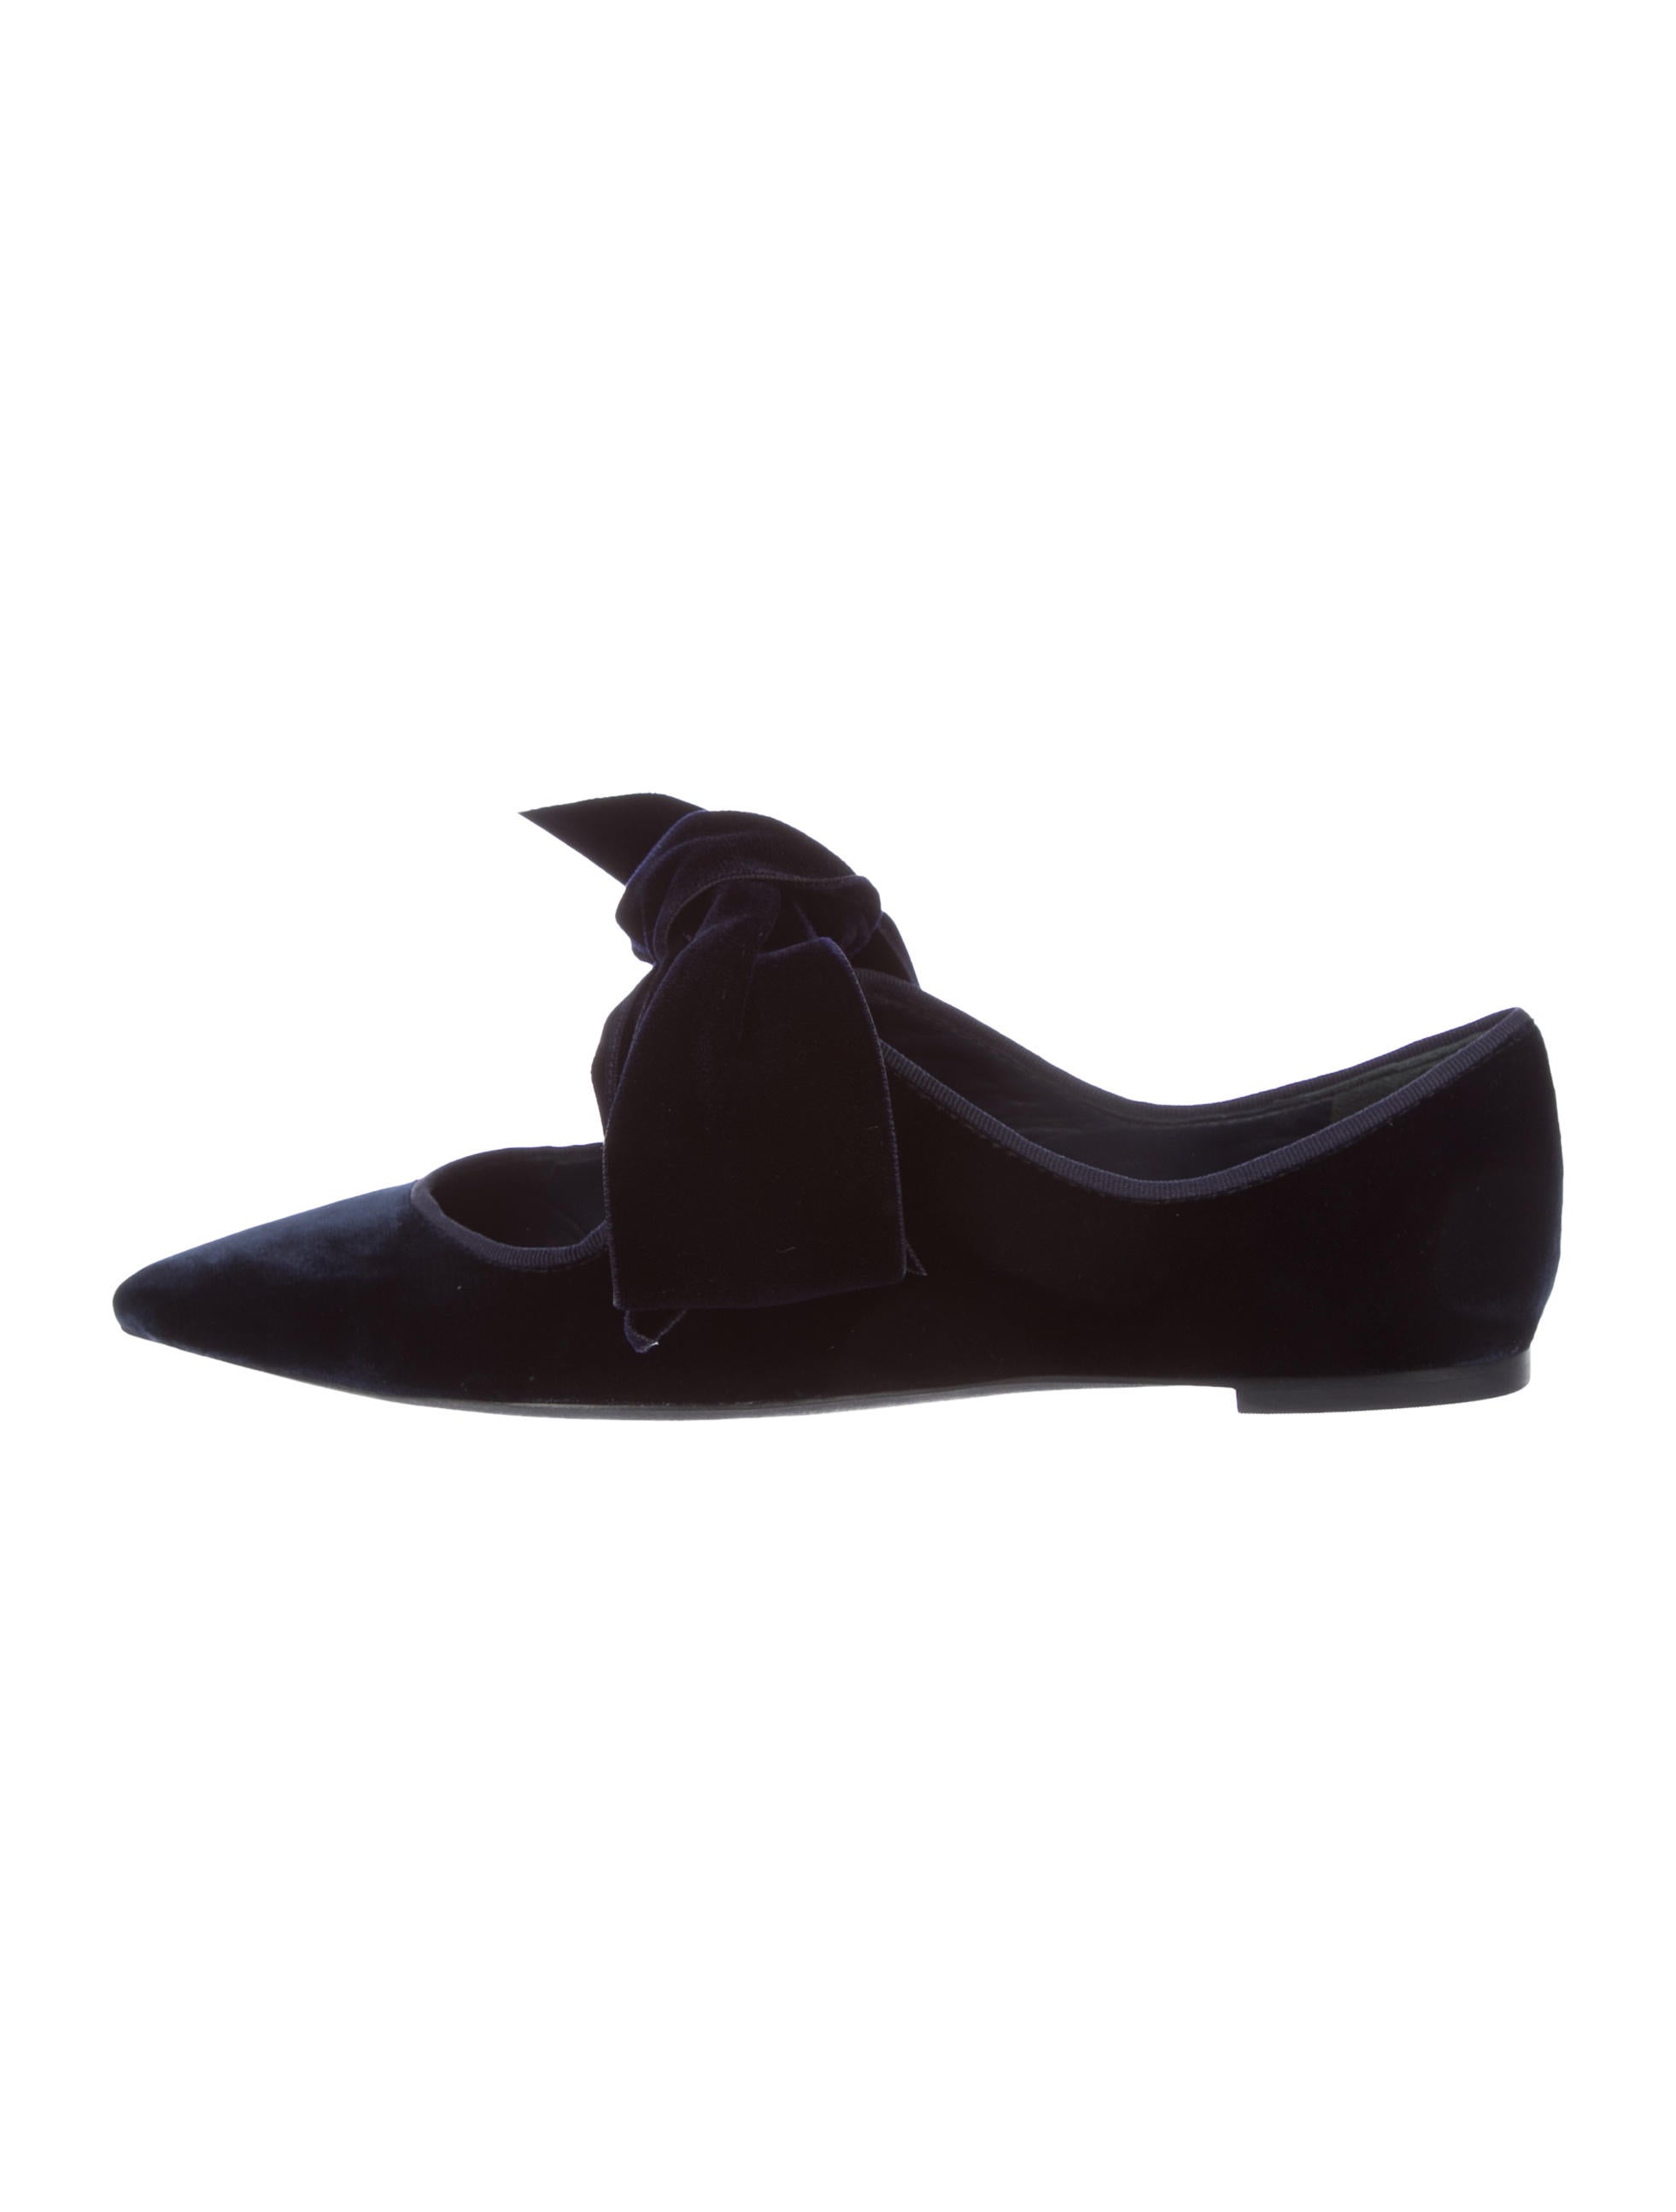 buy cheap pay with visa Tory Burch Clara Velvet Pointed-Toe Flats w/ Tags big sale cheap price pay with visa online IBKzDABMlV